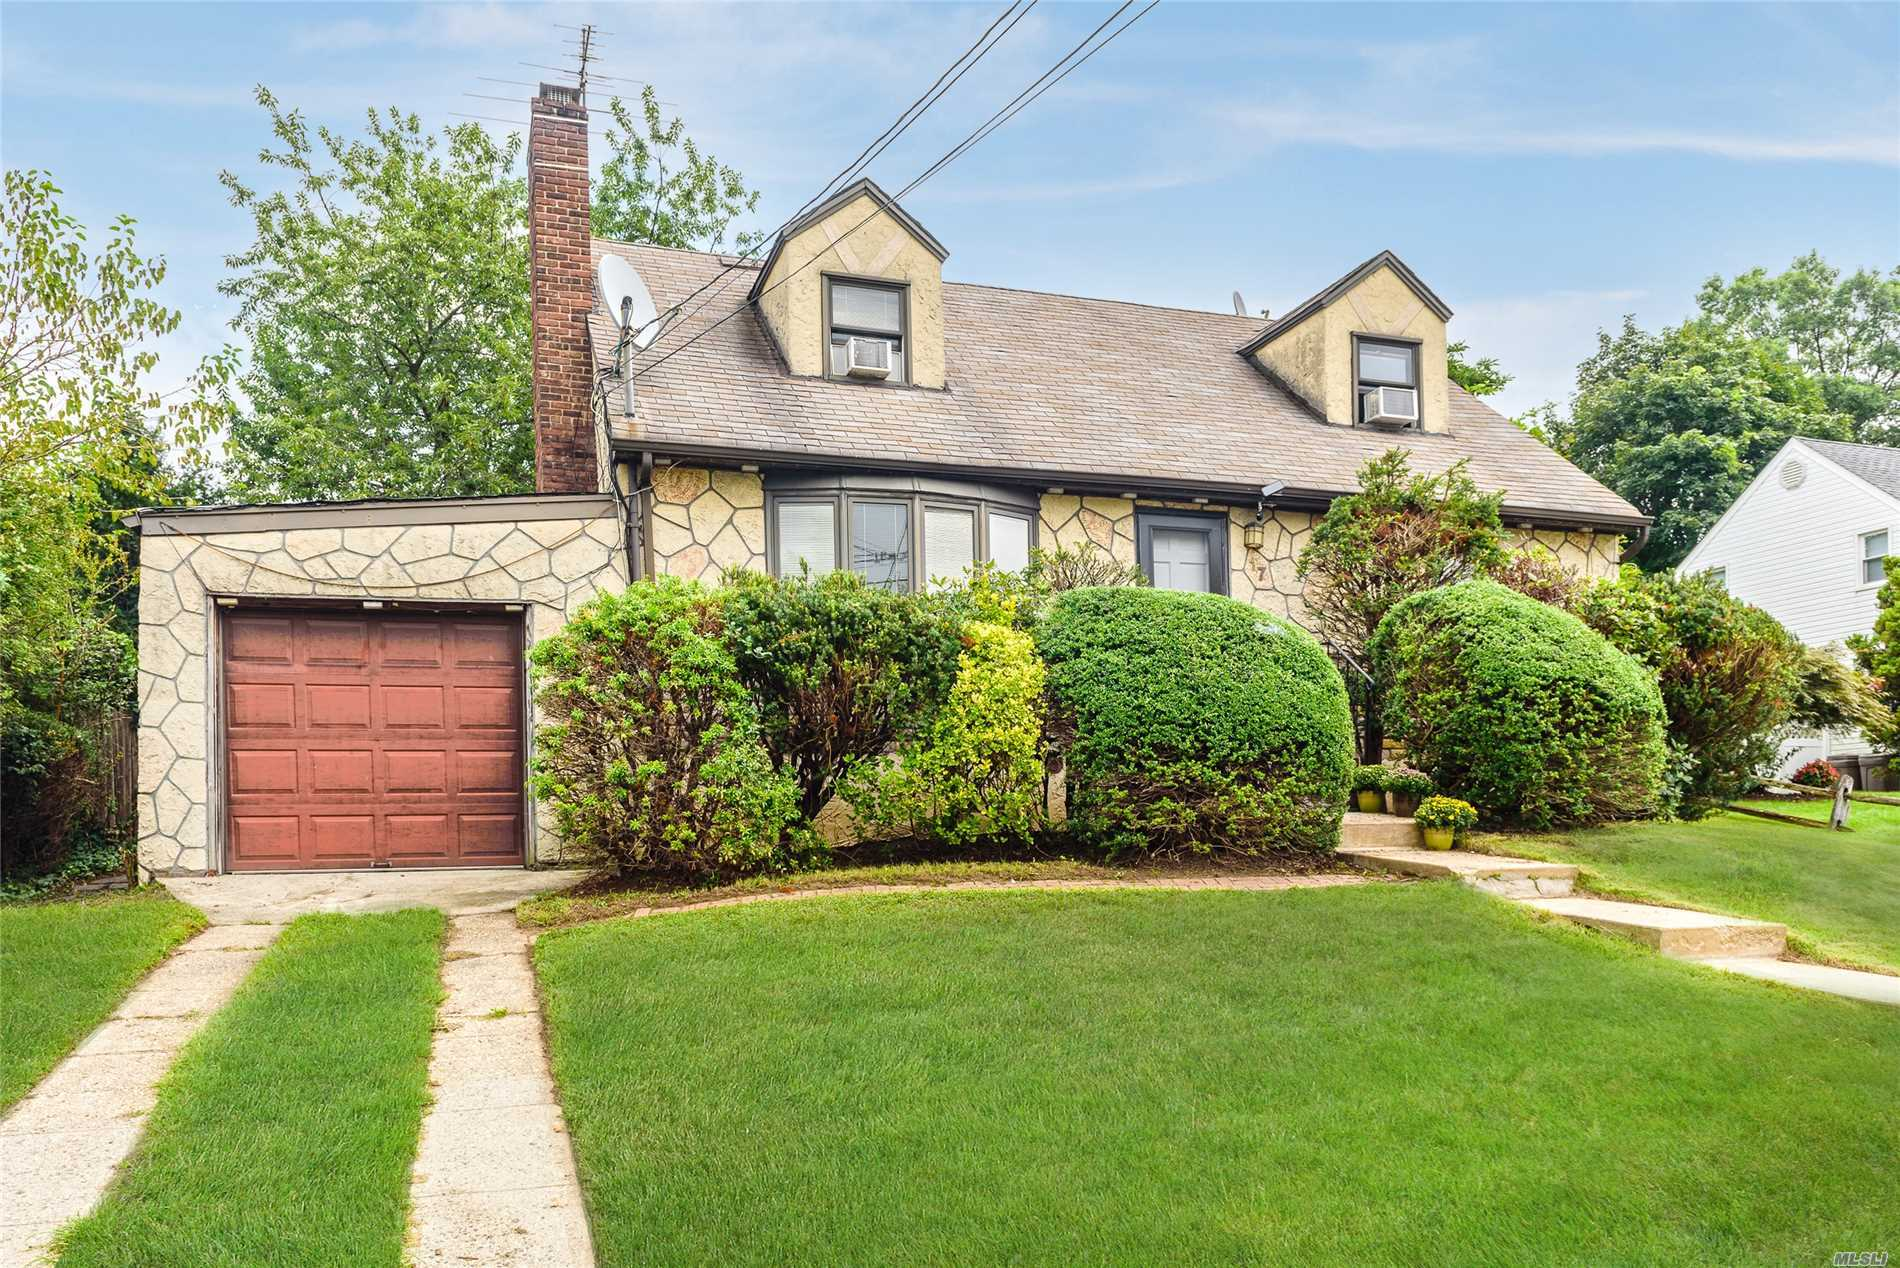 Lovely 4 Bedroom Cape In Herricks For $659, 000. Boasting A New Kitchen, Living Room W/ Fireplace, 1 Car Garage, Updated Heating System, Finished Basement & Much More. Situated Midblock On A Quiet Street!